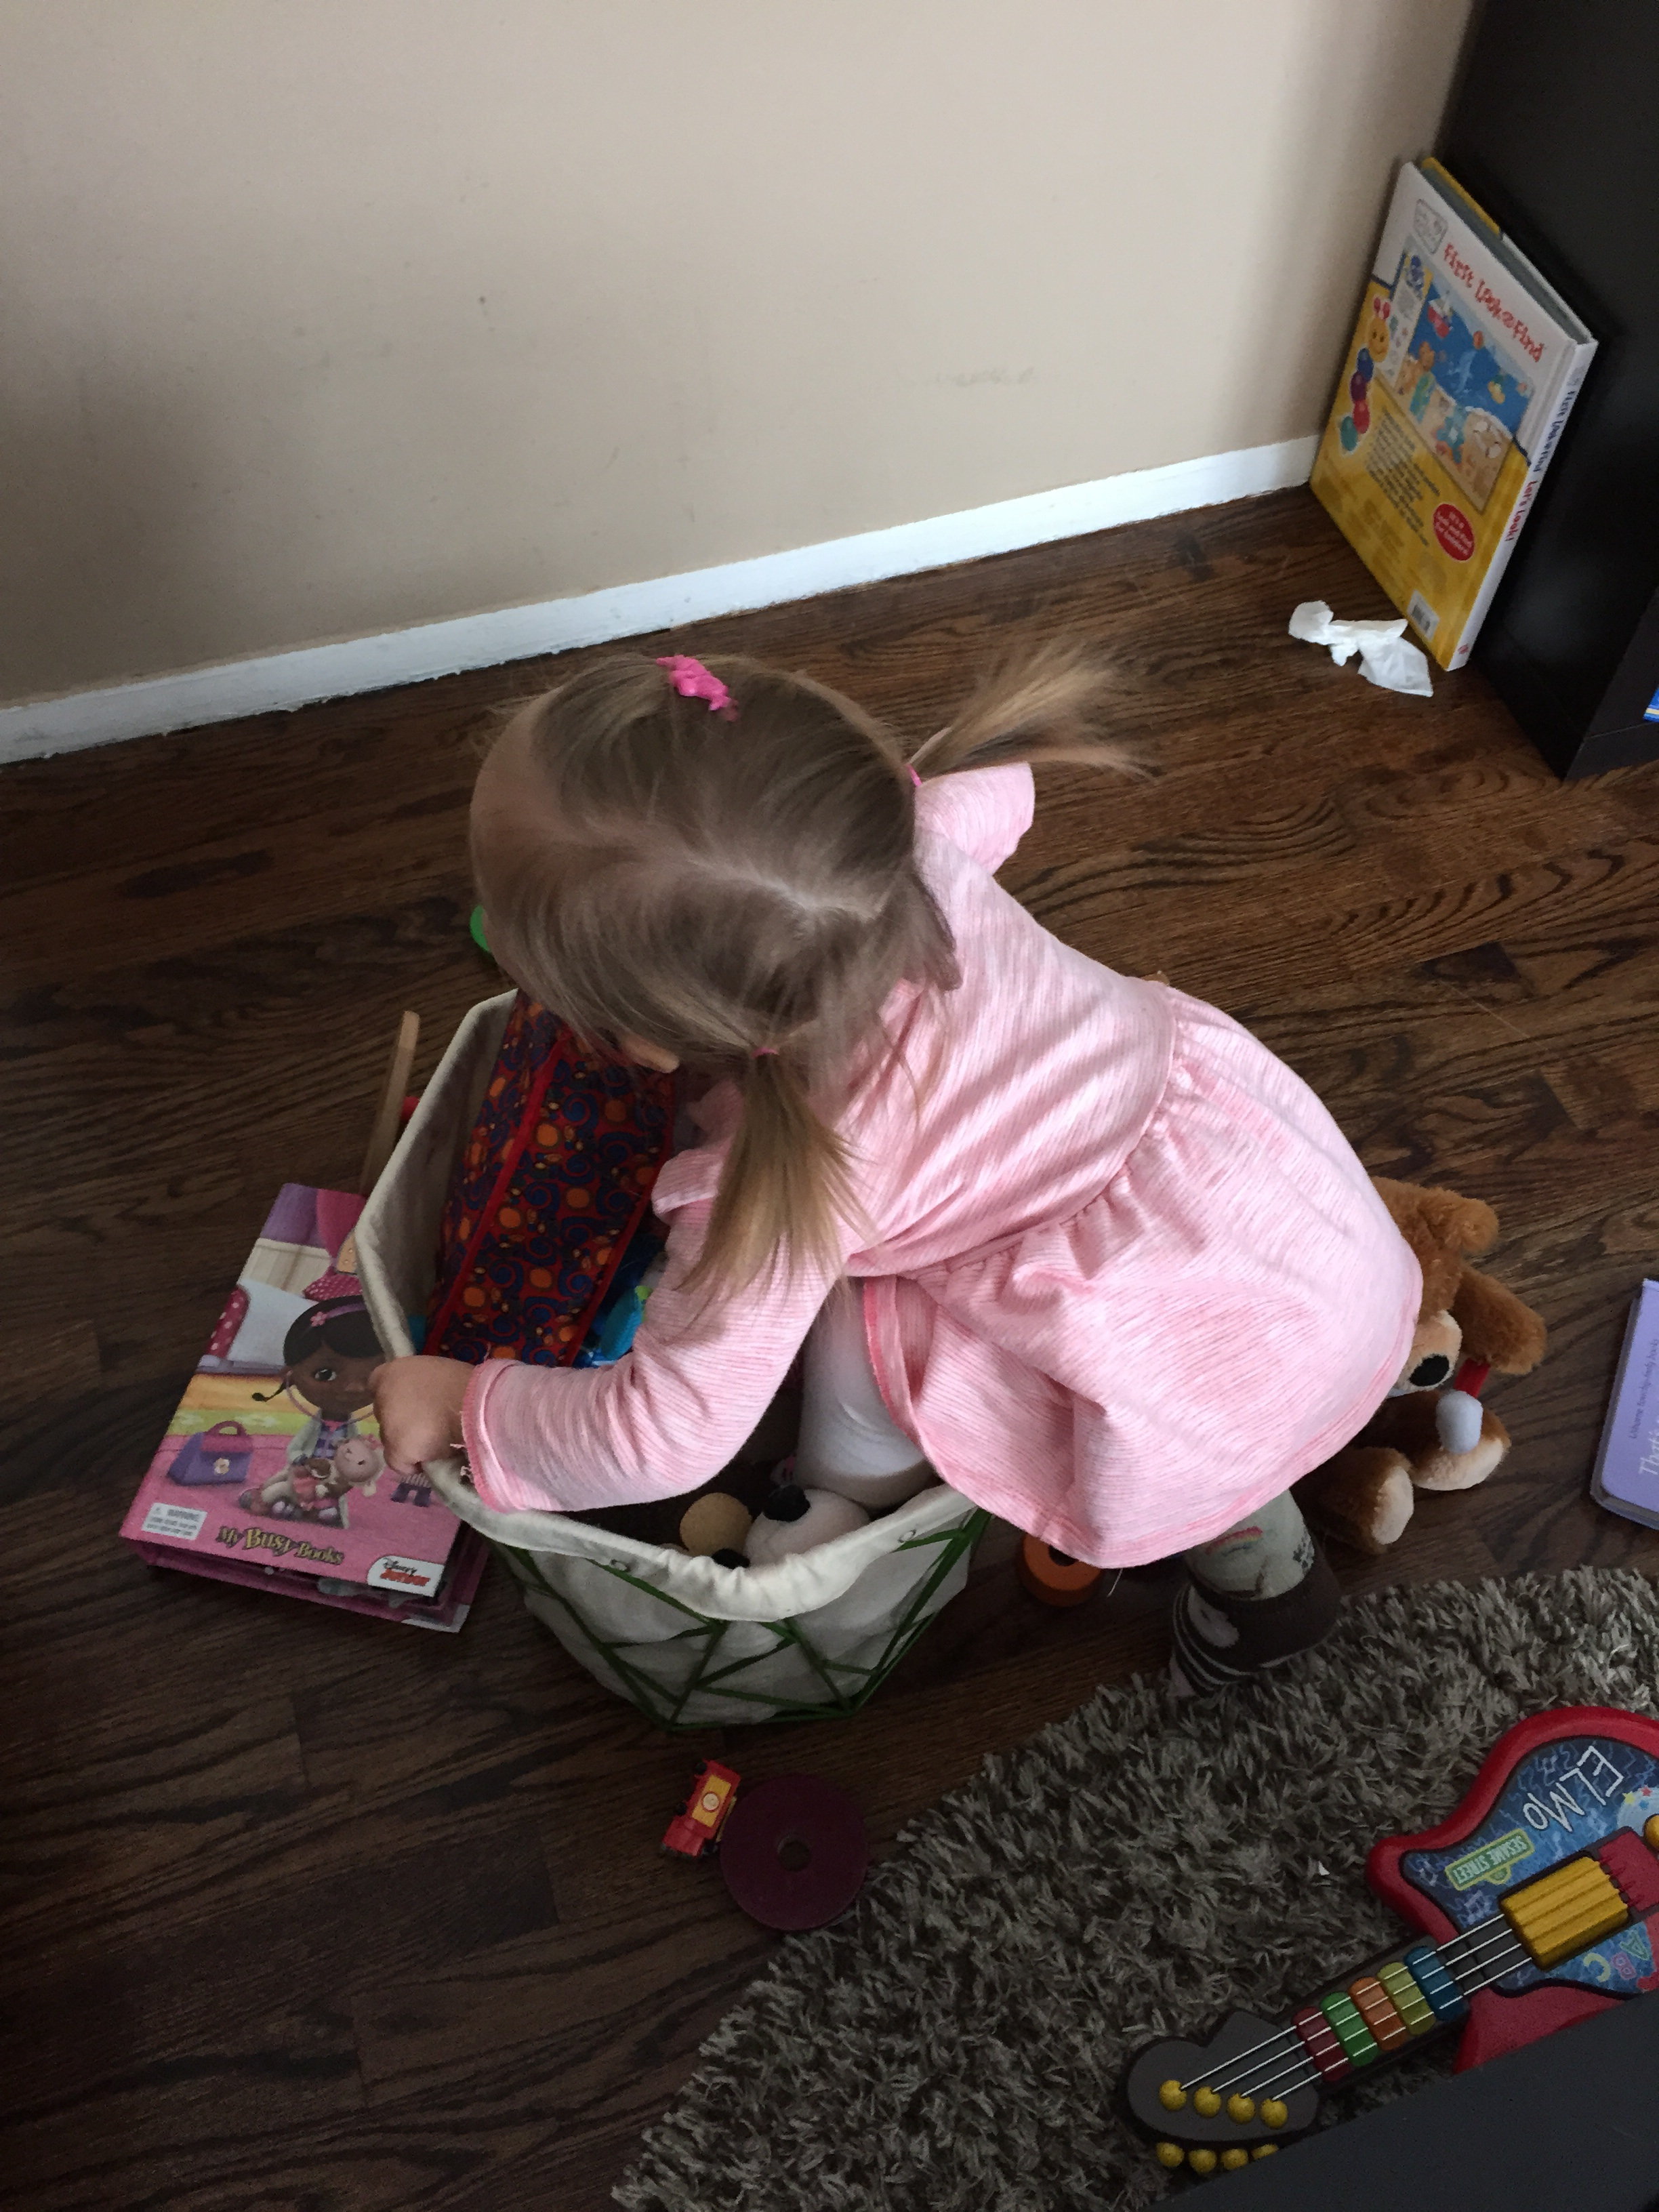 Toddler climbing in toy bin